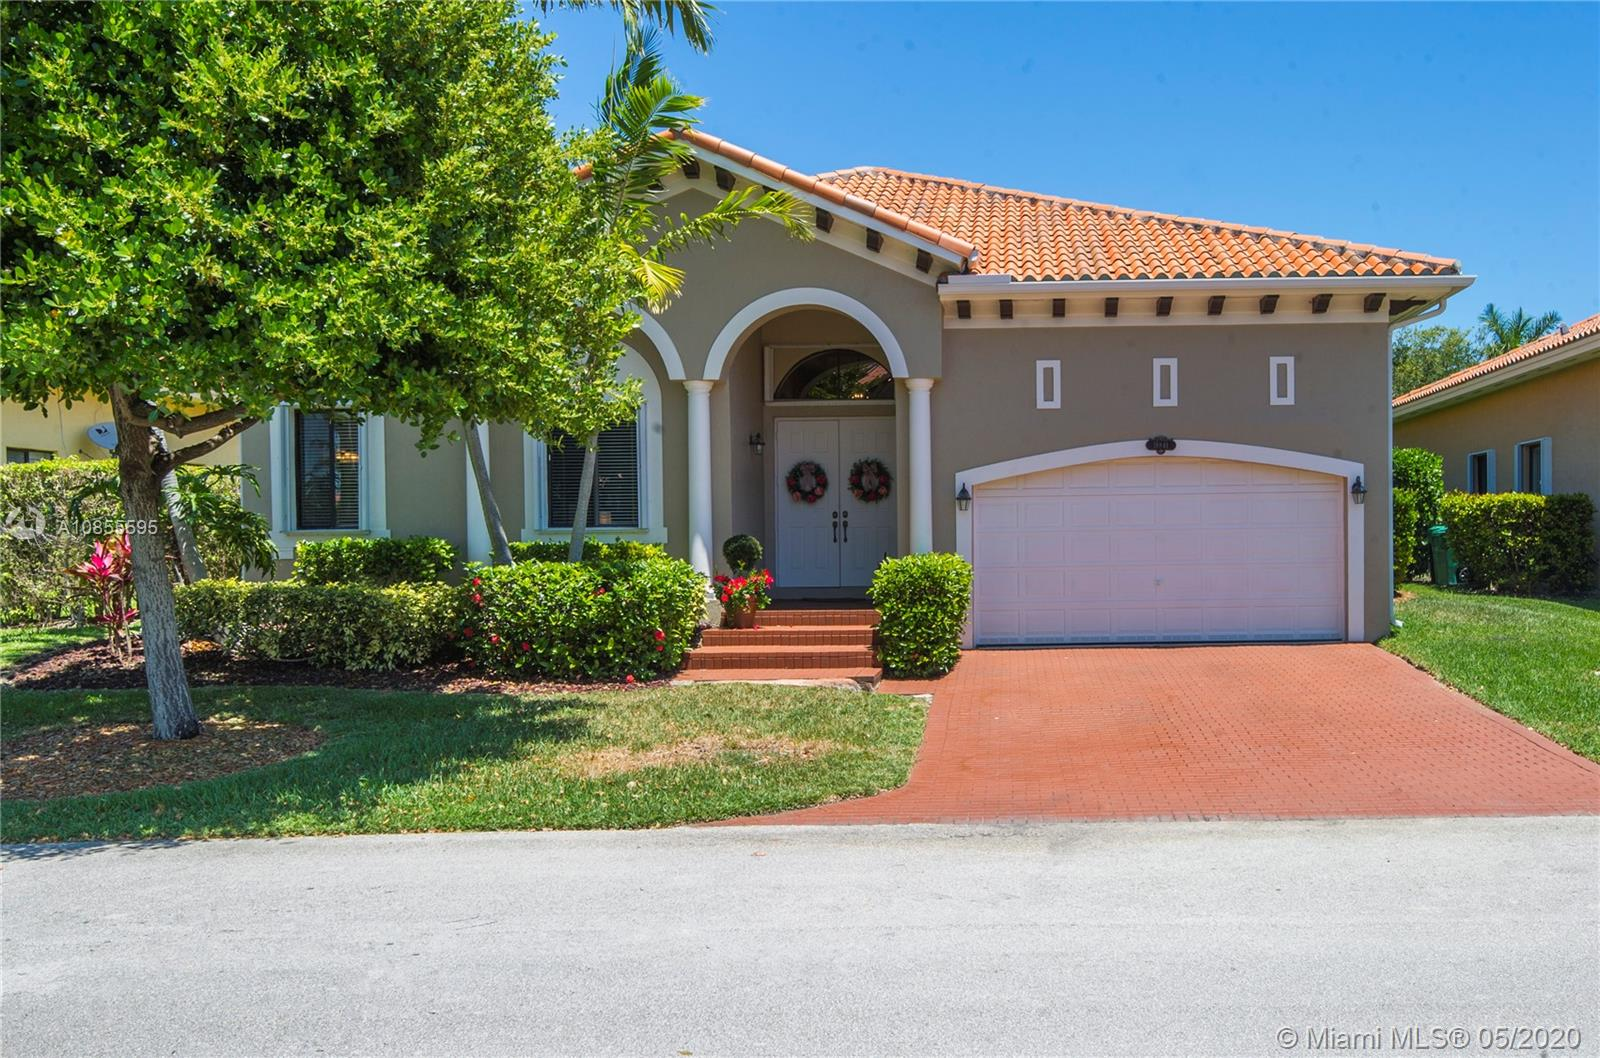 18841 SW 77th Ct, Cutler Bay, Florida 33157, 4 Bedrooms Bedrooms, ,4 BathroomsBathrooms,Residential,For Sale,18841 SW 77th Ct,A10855595